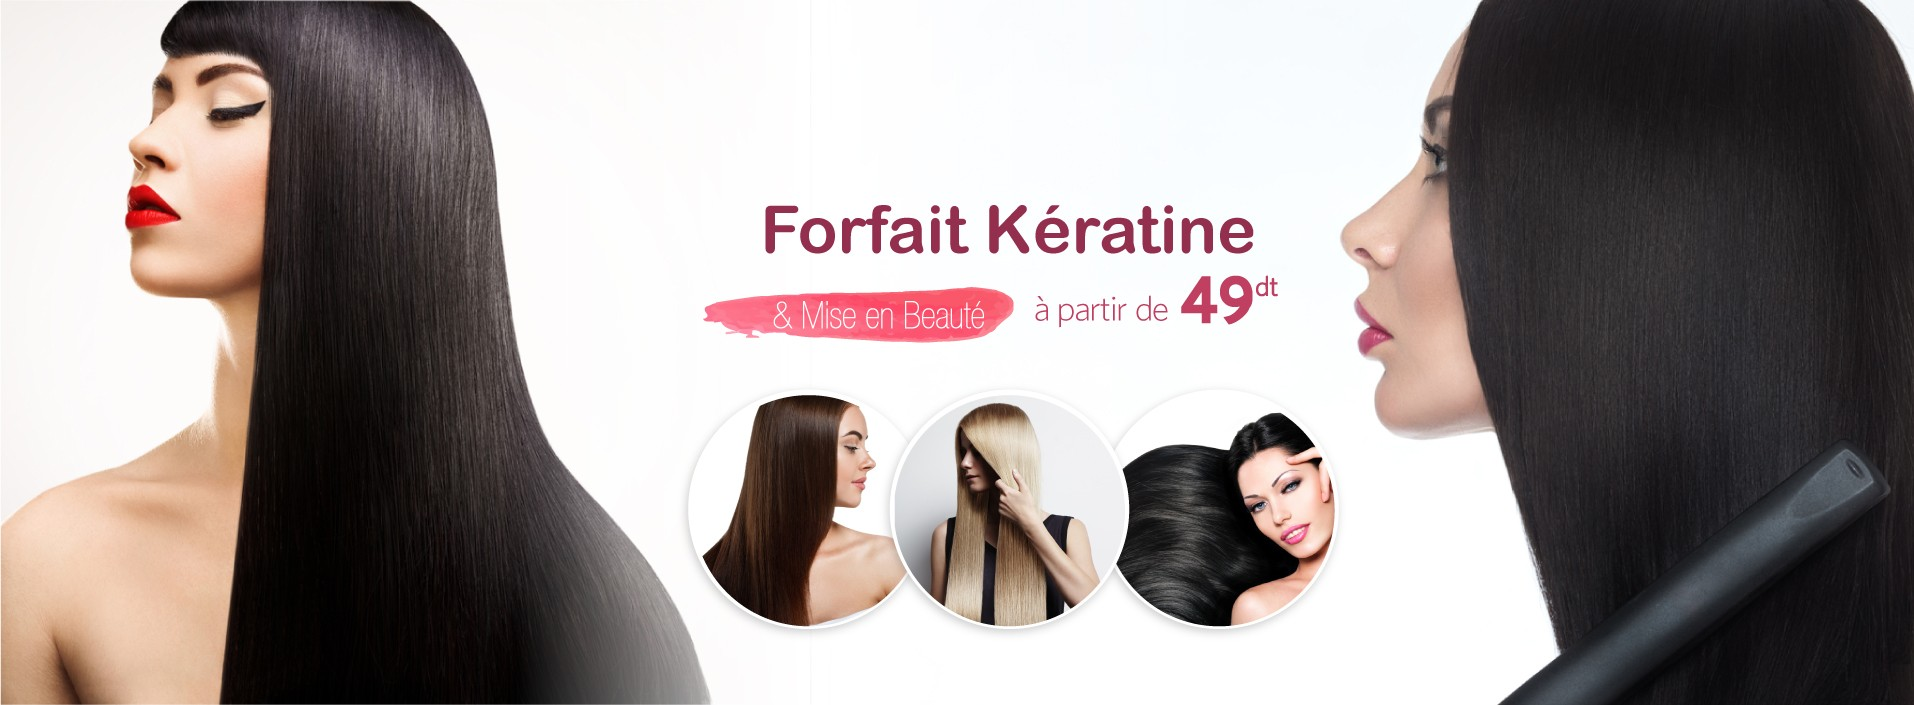 Site de vente en ligne en Tunisie | Super Deal Tunisie